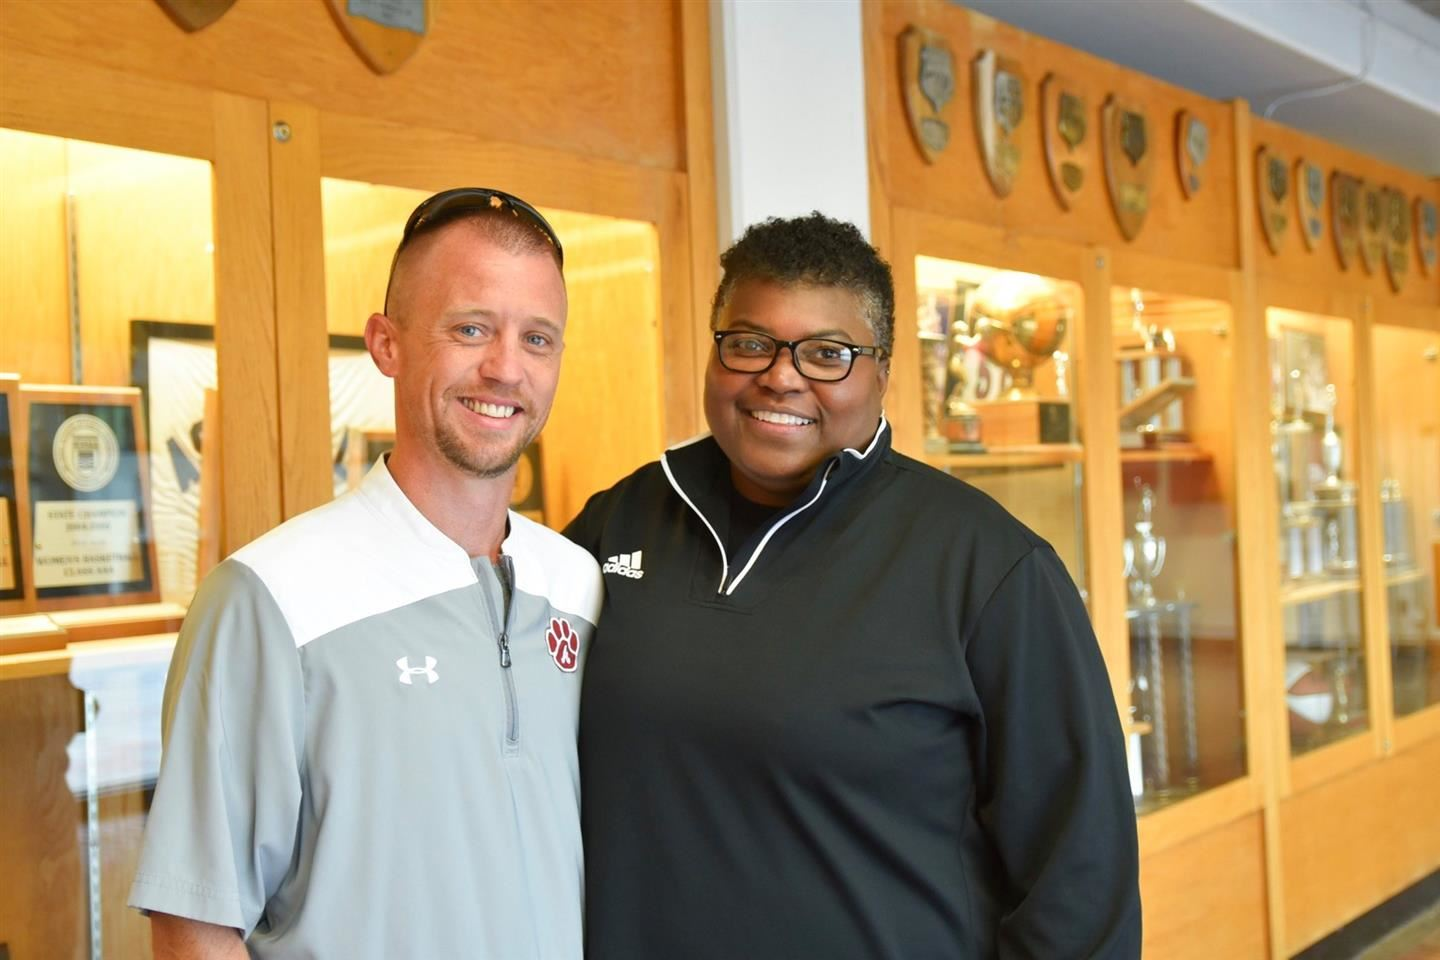 Asheville High School Names Athletic Director Duo